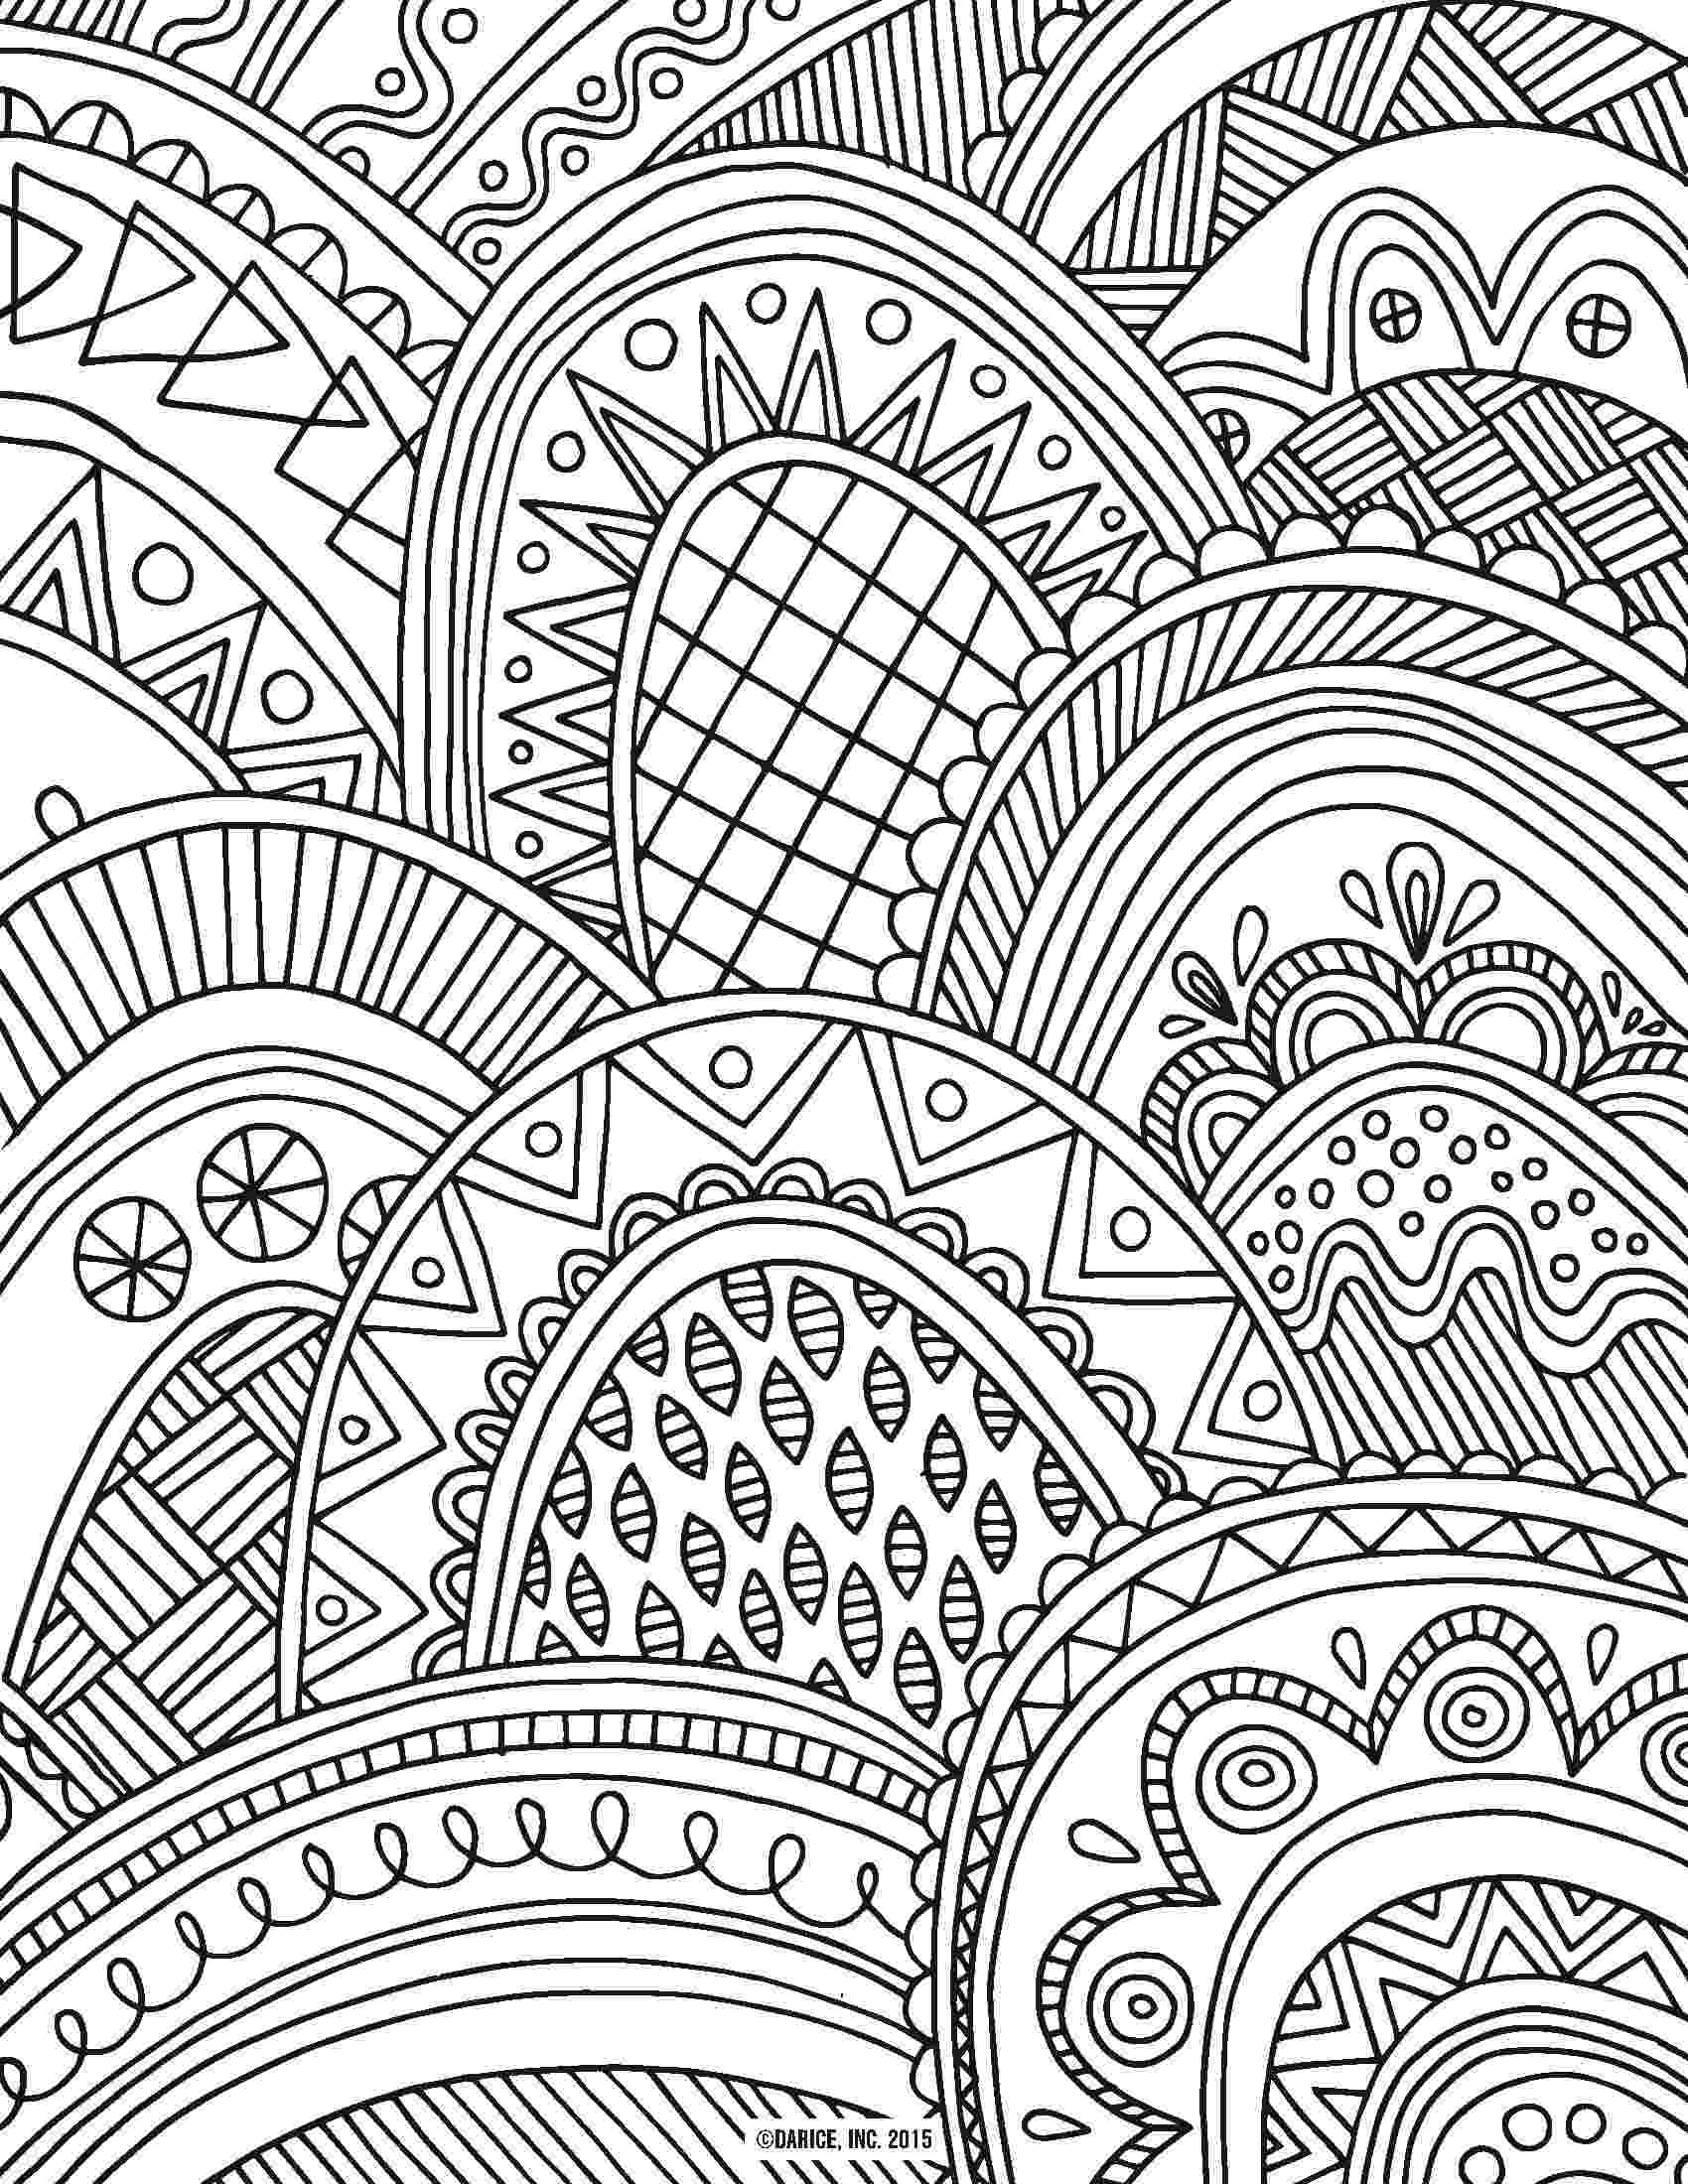 coloring pages online for adults complex coloring pages for teens and adults best coloring pages for online adults